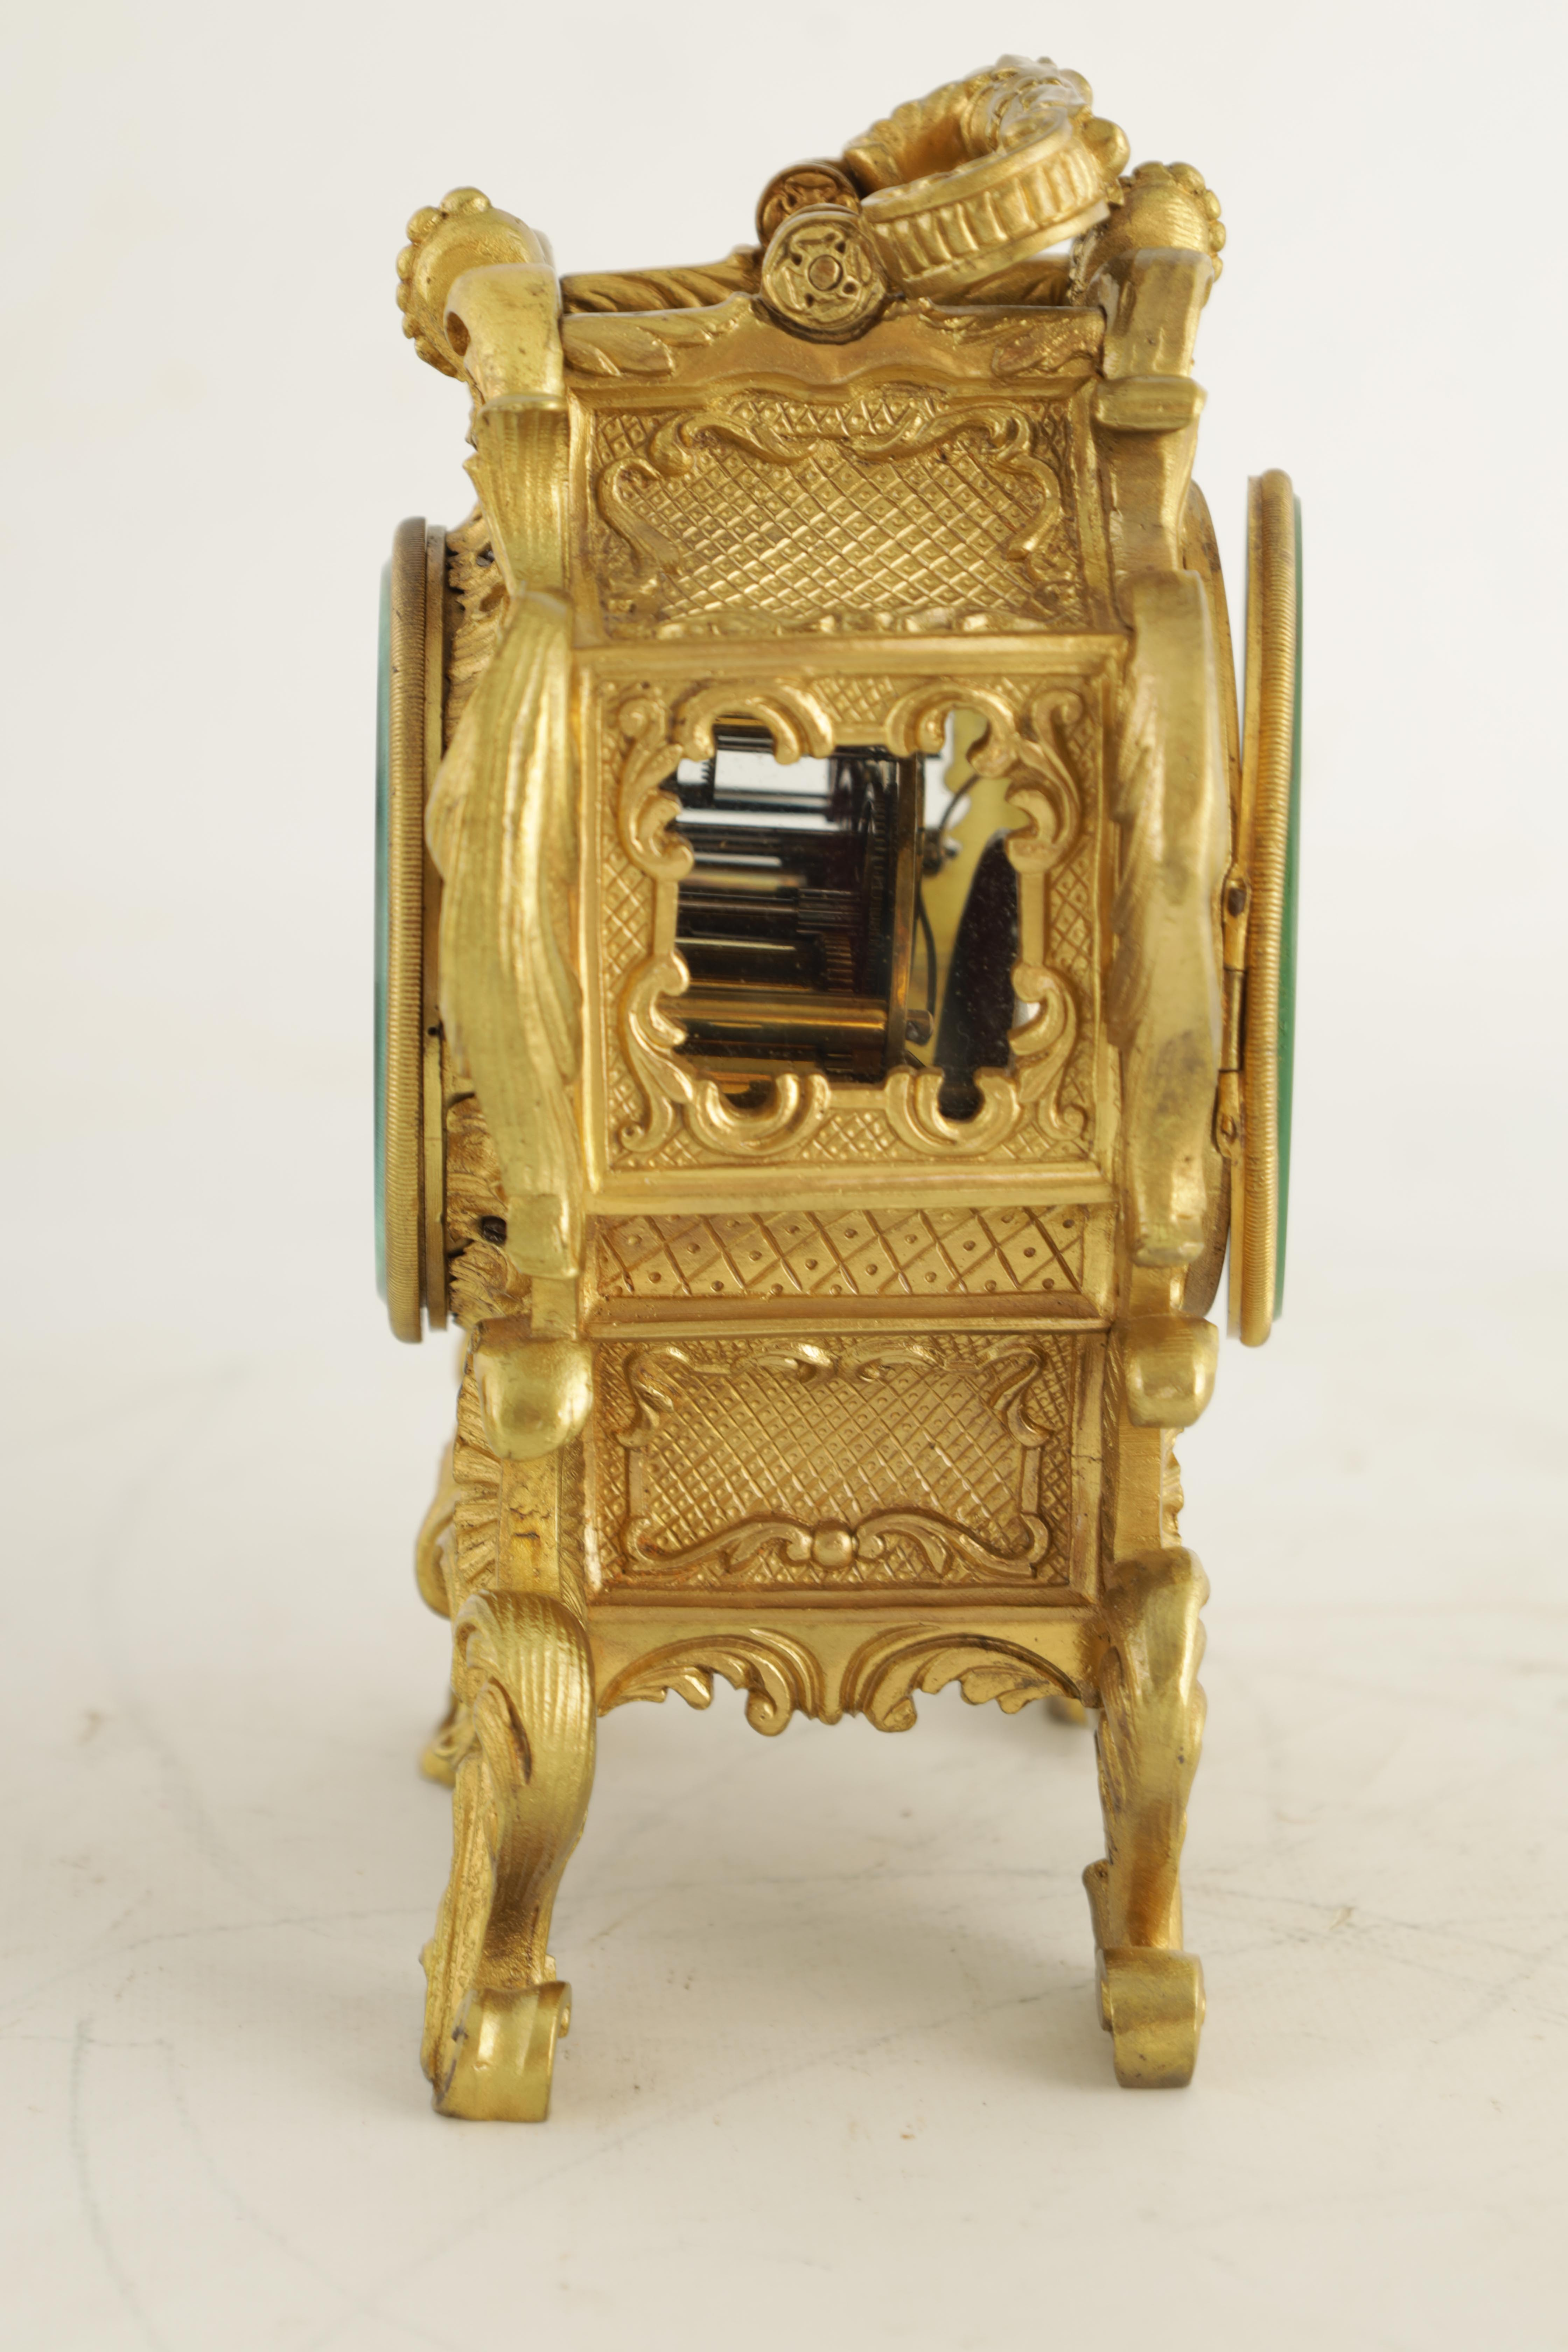 PAUL GARNIER, PARIS A MID 19TH CENTURY FRENCH TRAVELLING MANTEL CLOCK the gilt bronze rococo style - Image 13 of 13